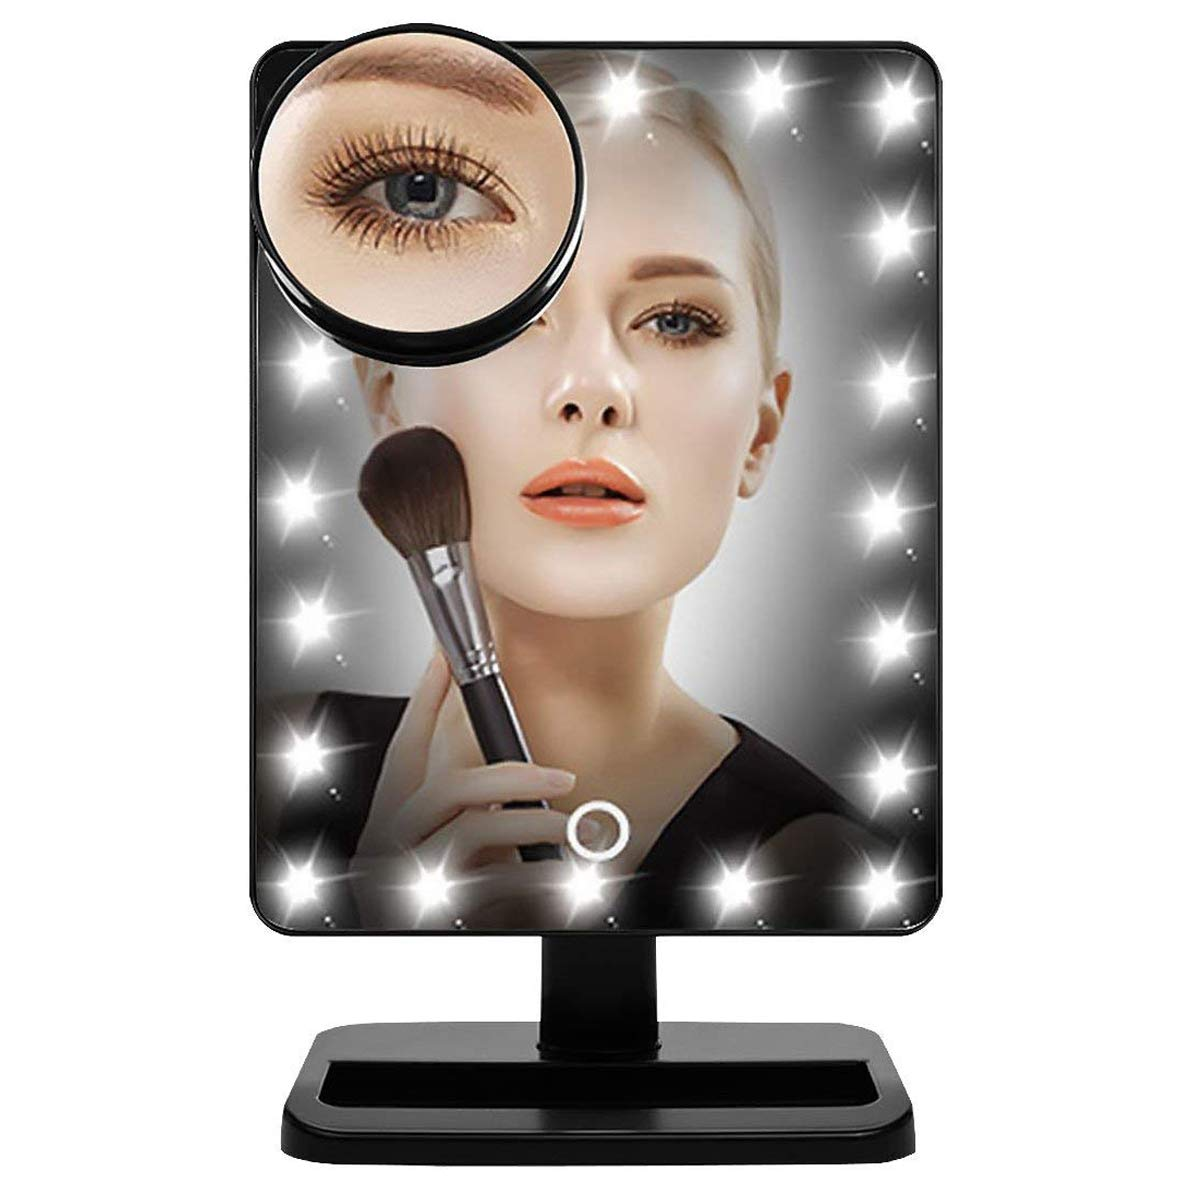 AUTOPDR Llighted makeup mirror/Vanity mirror with LED touch screen Dimming,Portable convenience and Detachable Magnifying nature light LED…